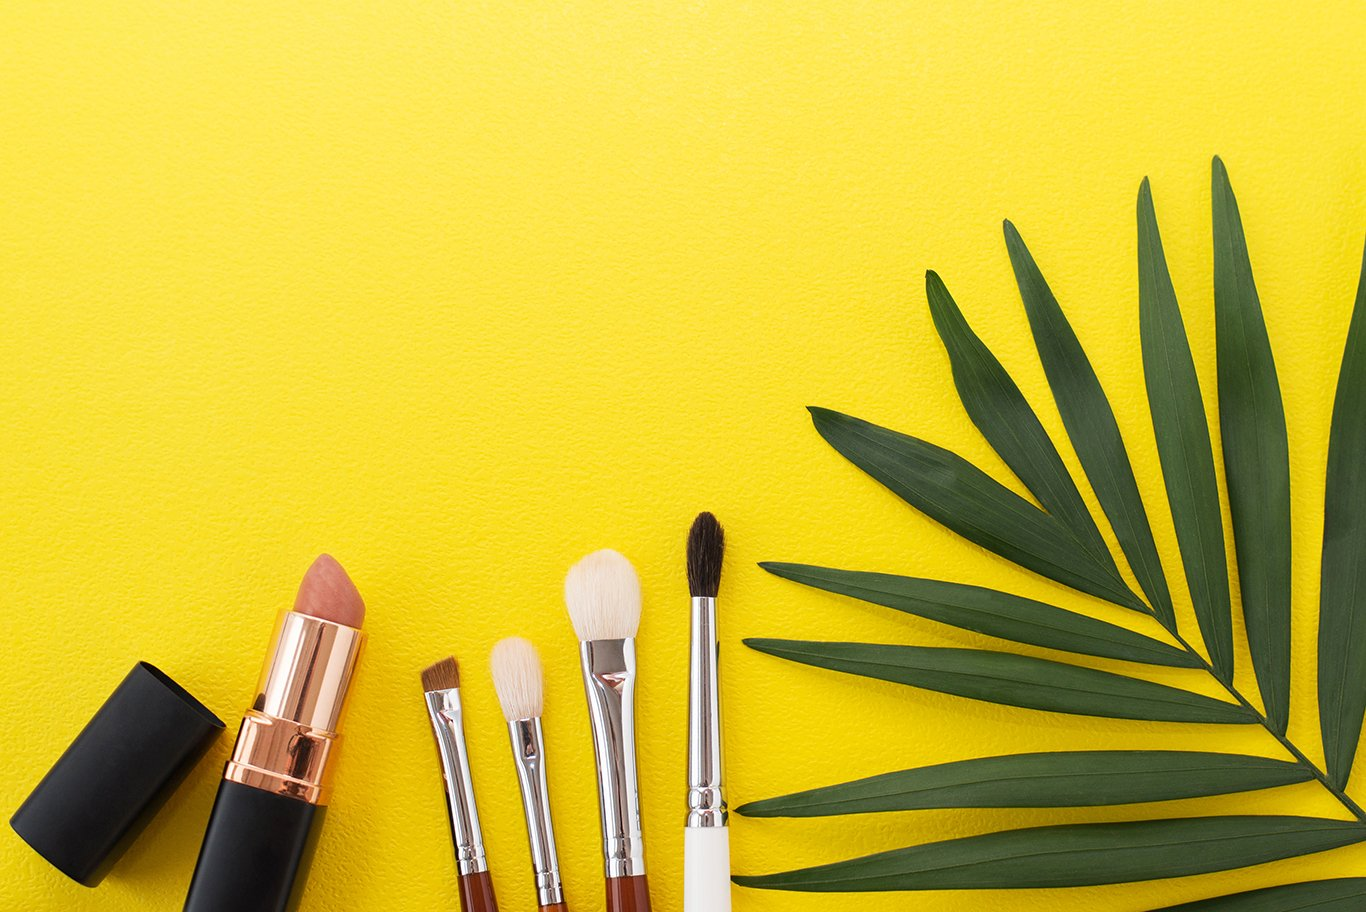 Lipstick with brushes on a yellow background example image 1